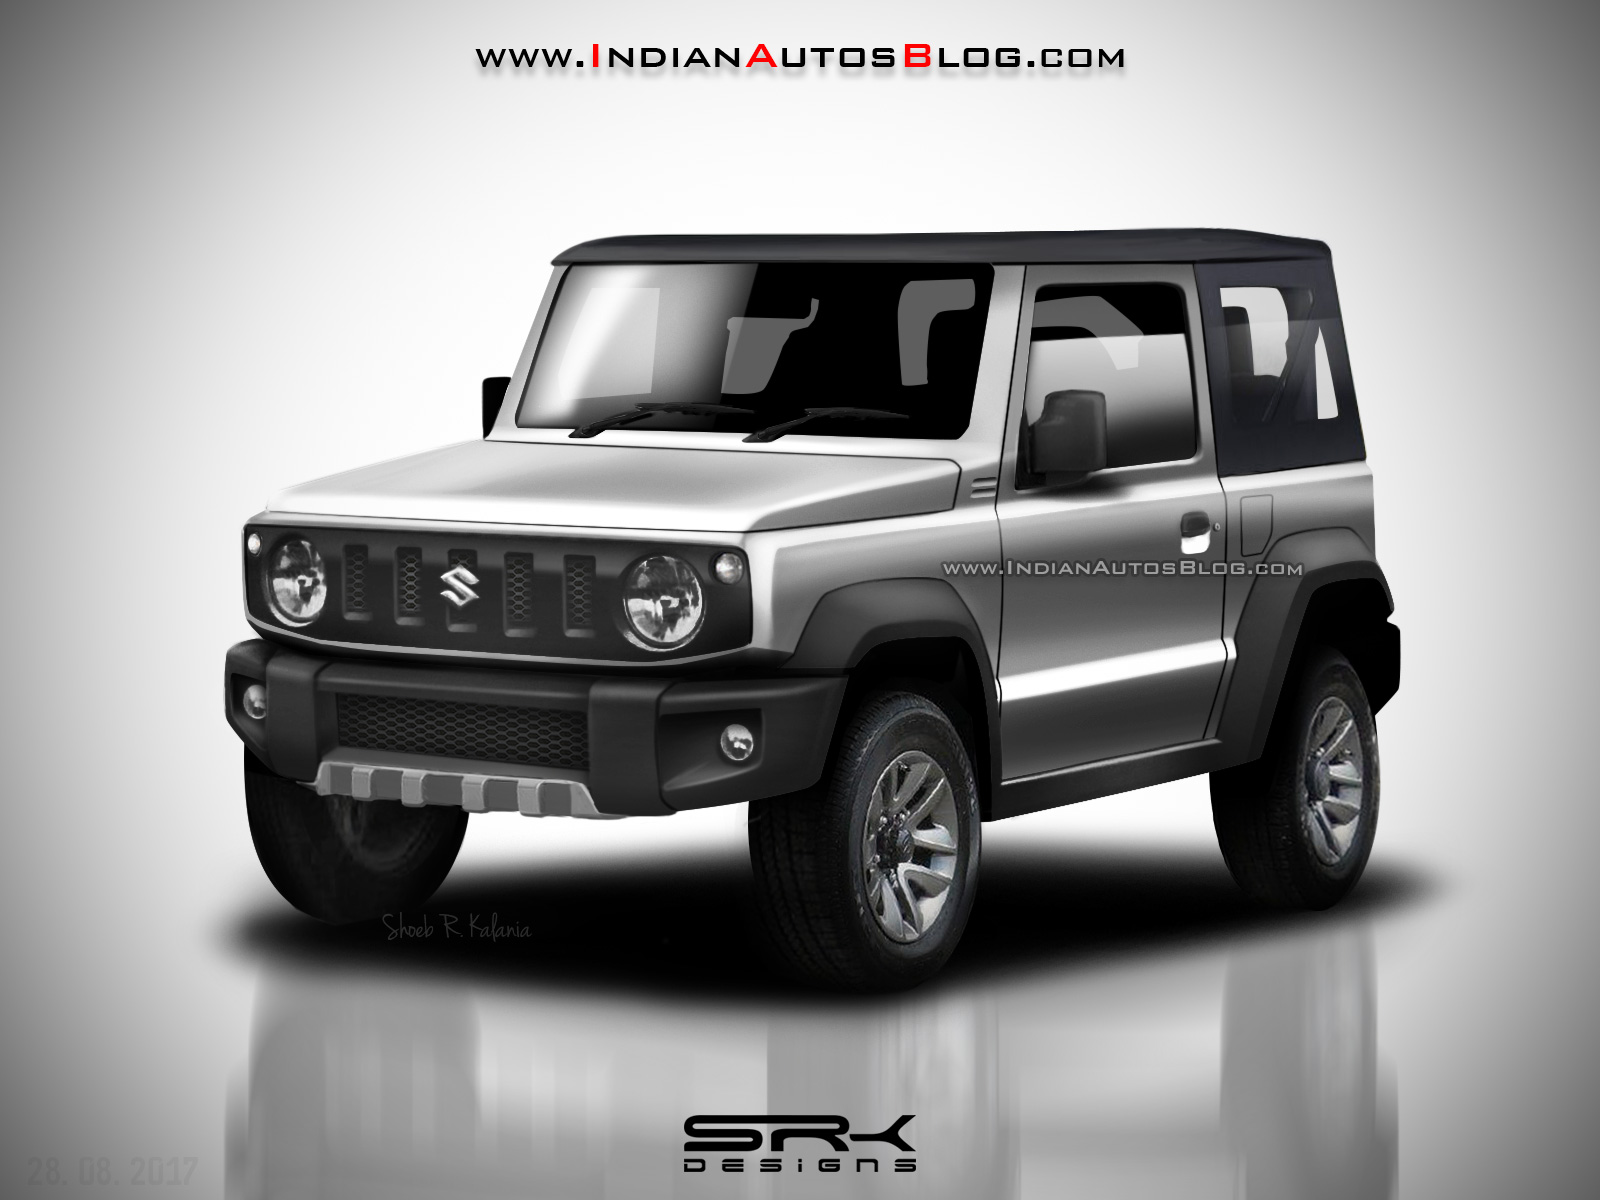 2020 Suzuki Jimny: News, Design, Release >> 2018 Suzuki Jimny Soft Top Variant Rendered